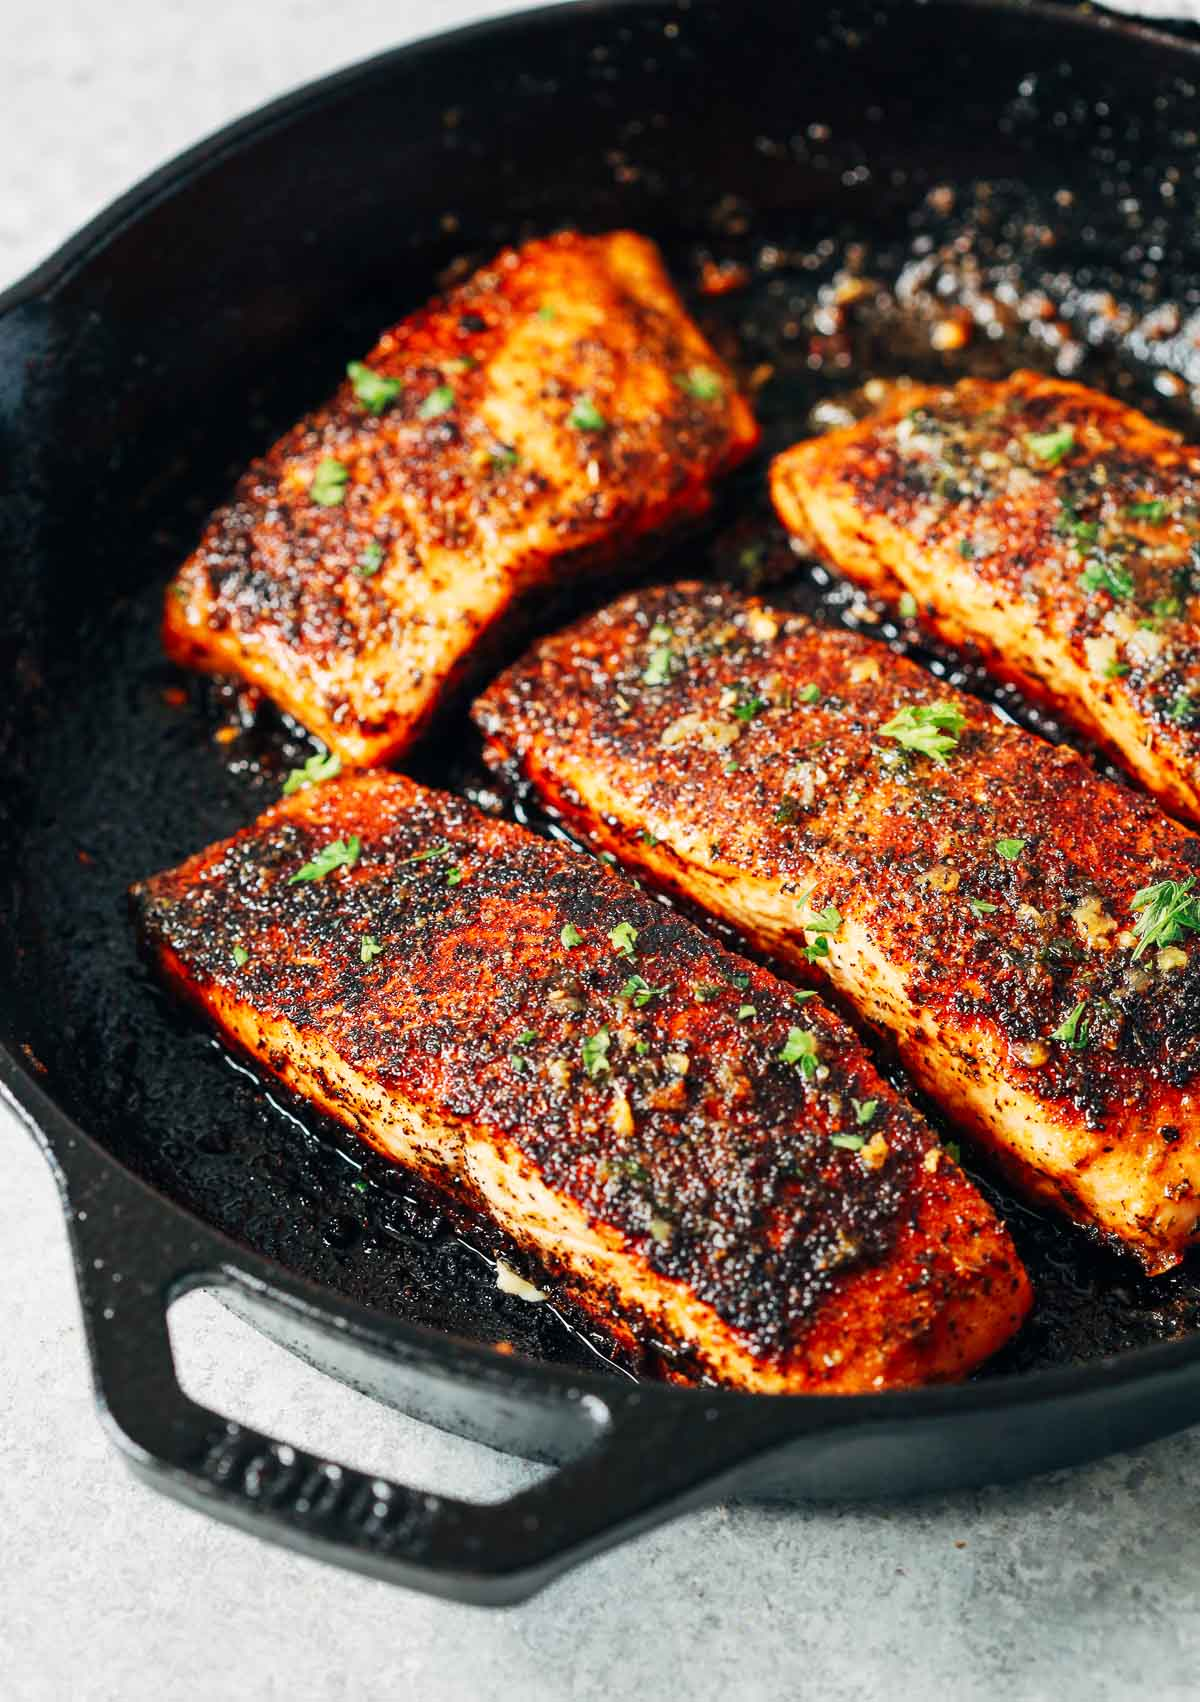 overhead view of a white skillet containing Blackened salmon